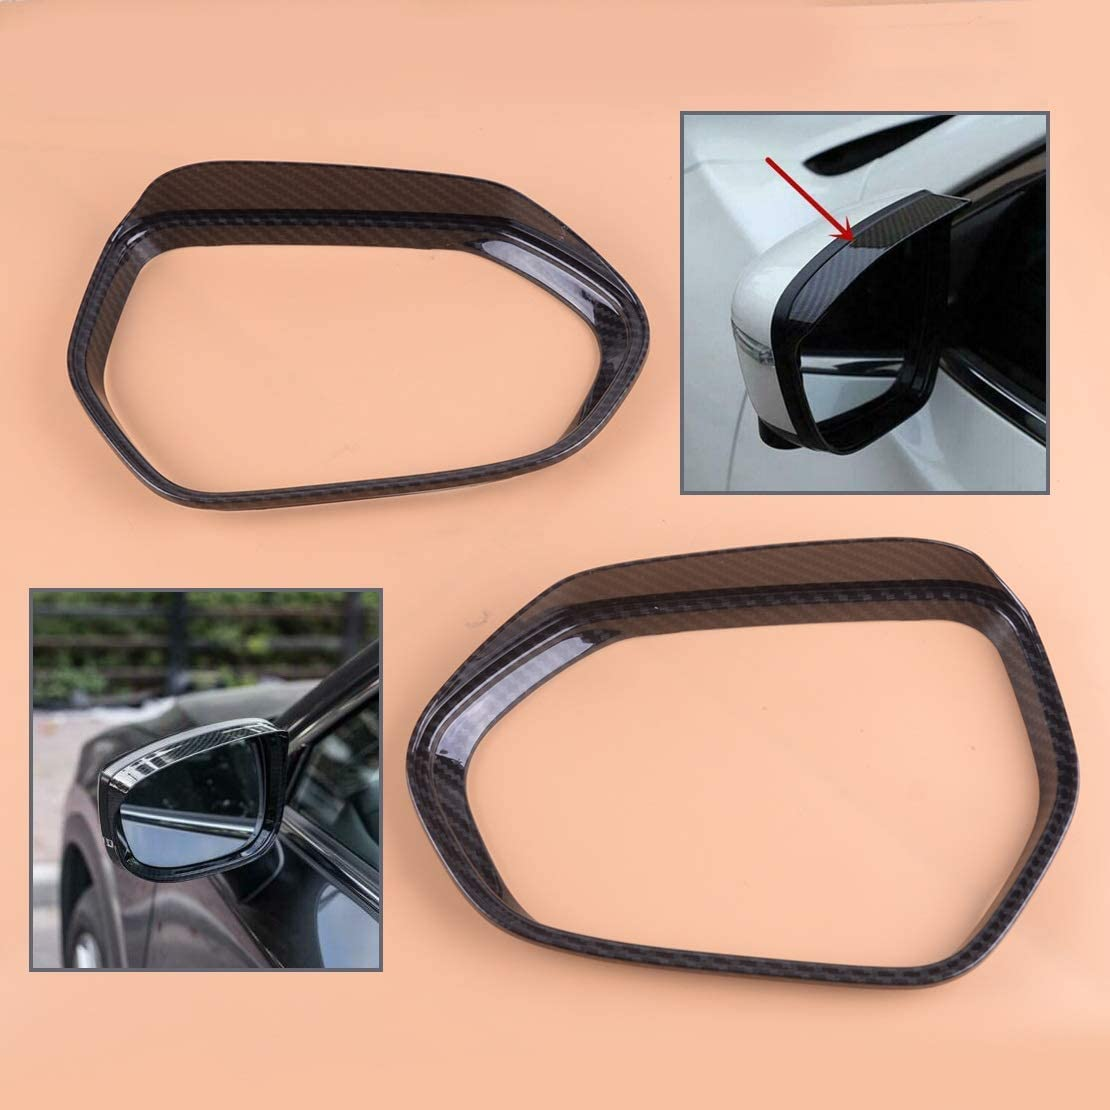 BAIJIAXIUSHANG-TIES Valves Fittings 2pcs ABS Car Side Rearview Mirror Rain Eyebrow Cover Trim Cup Shell Frame for Toyota Corolla Hatchback 2019